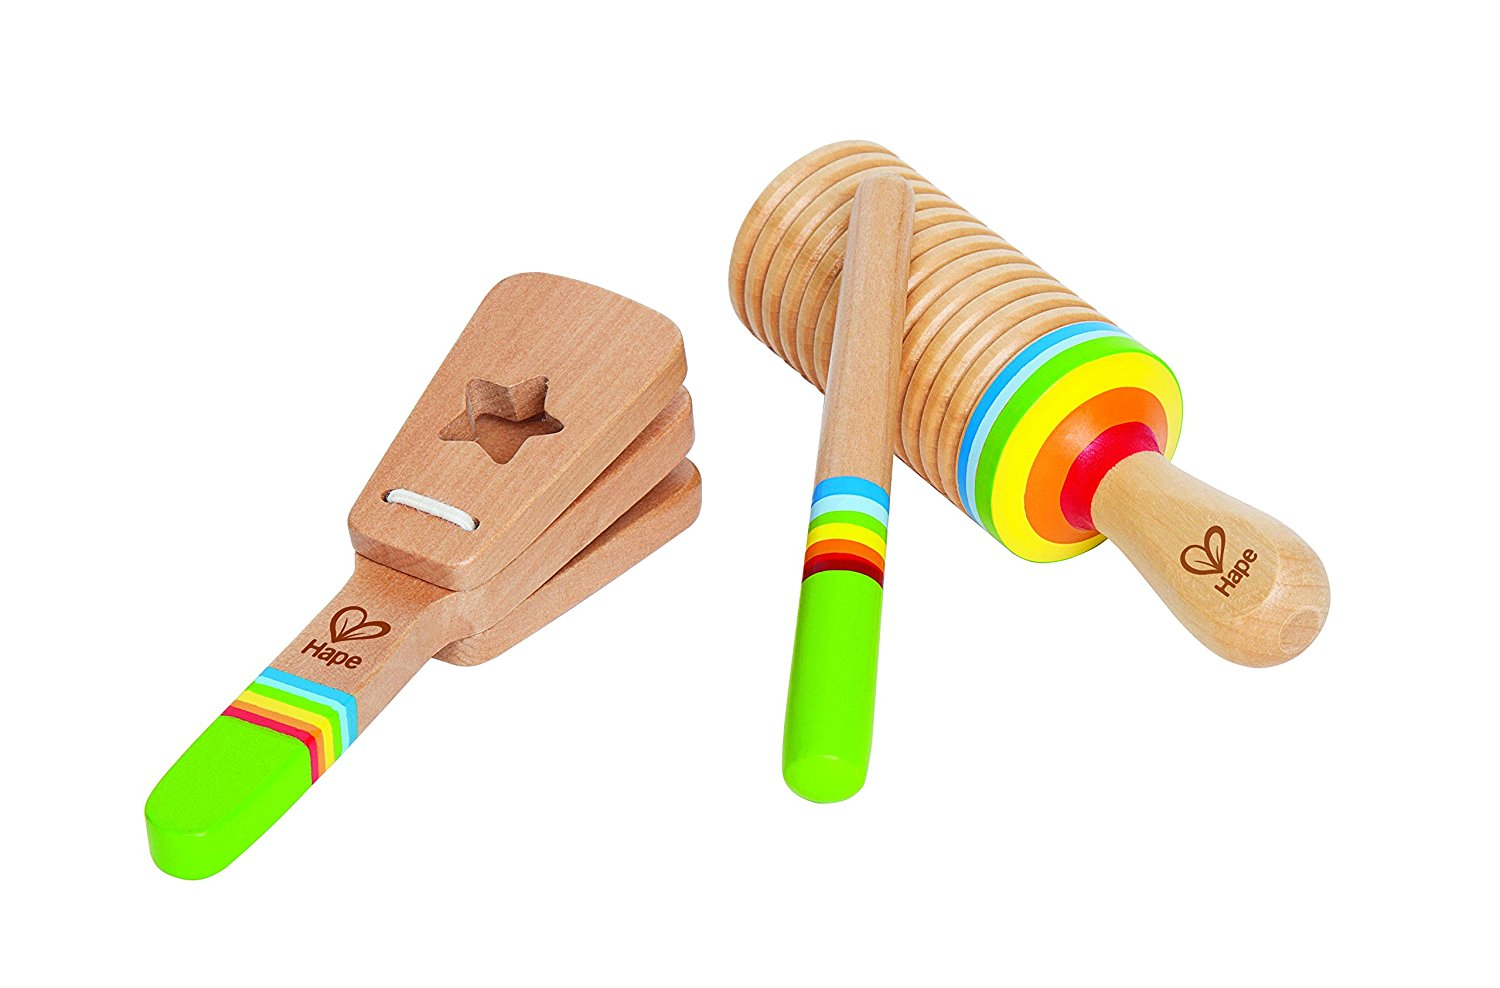 picture-of-wooden-instruments-photo